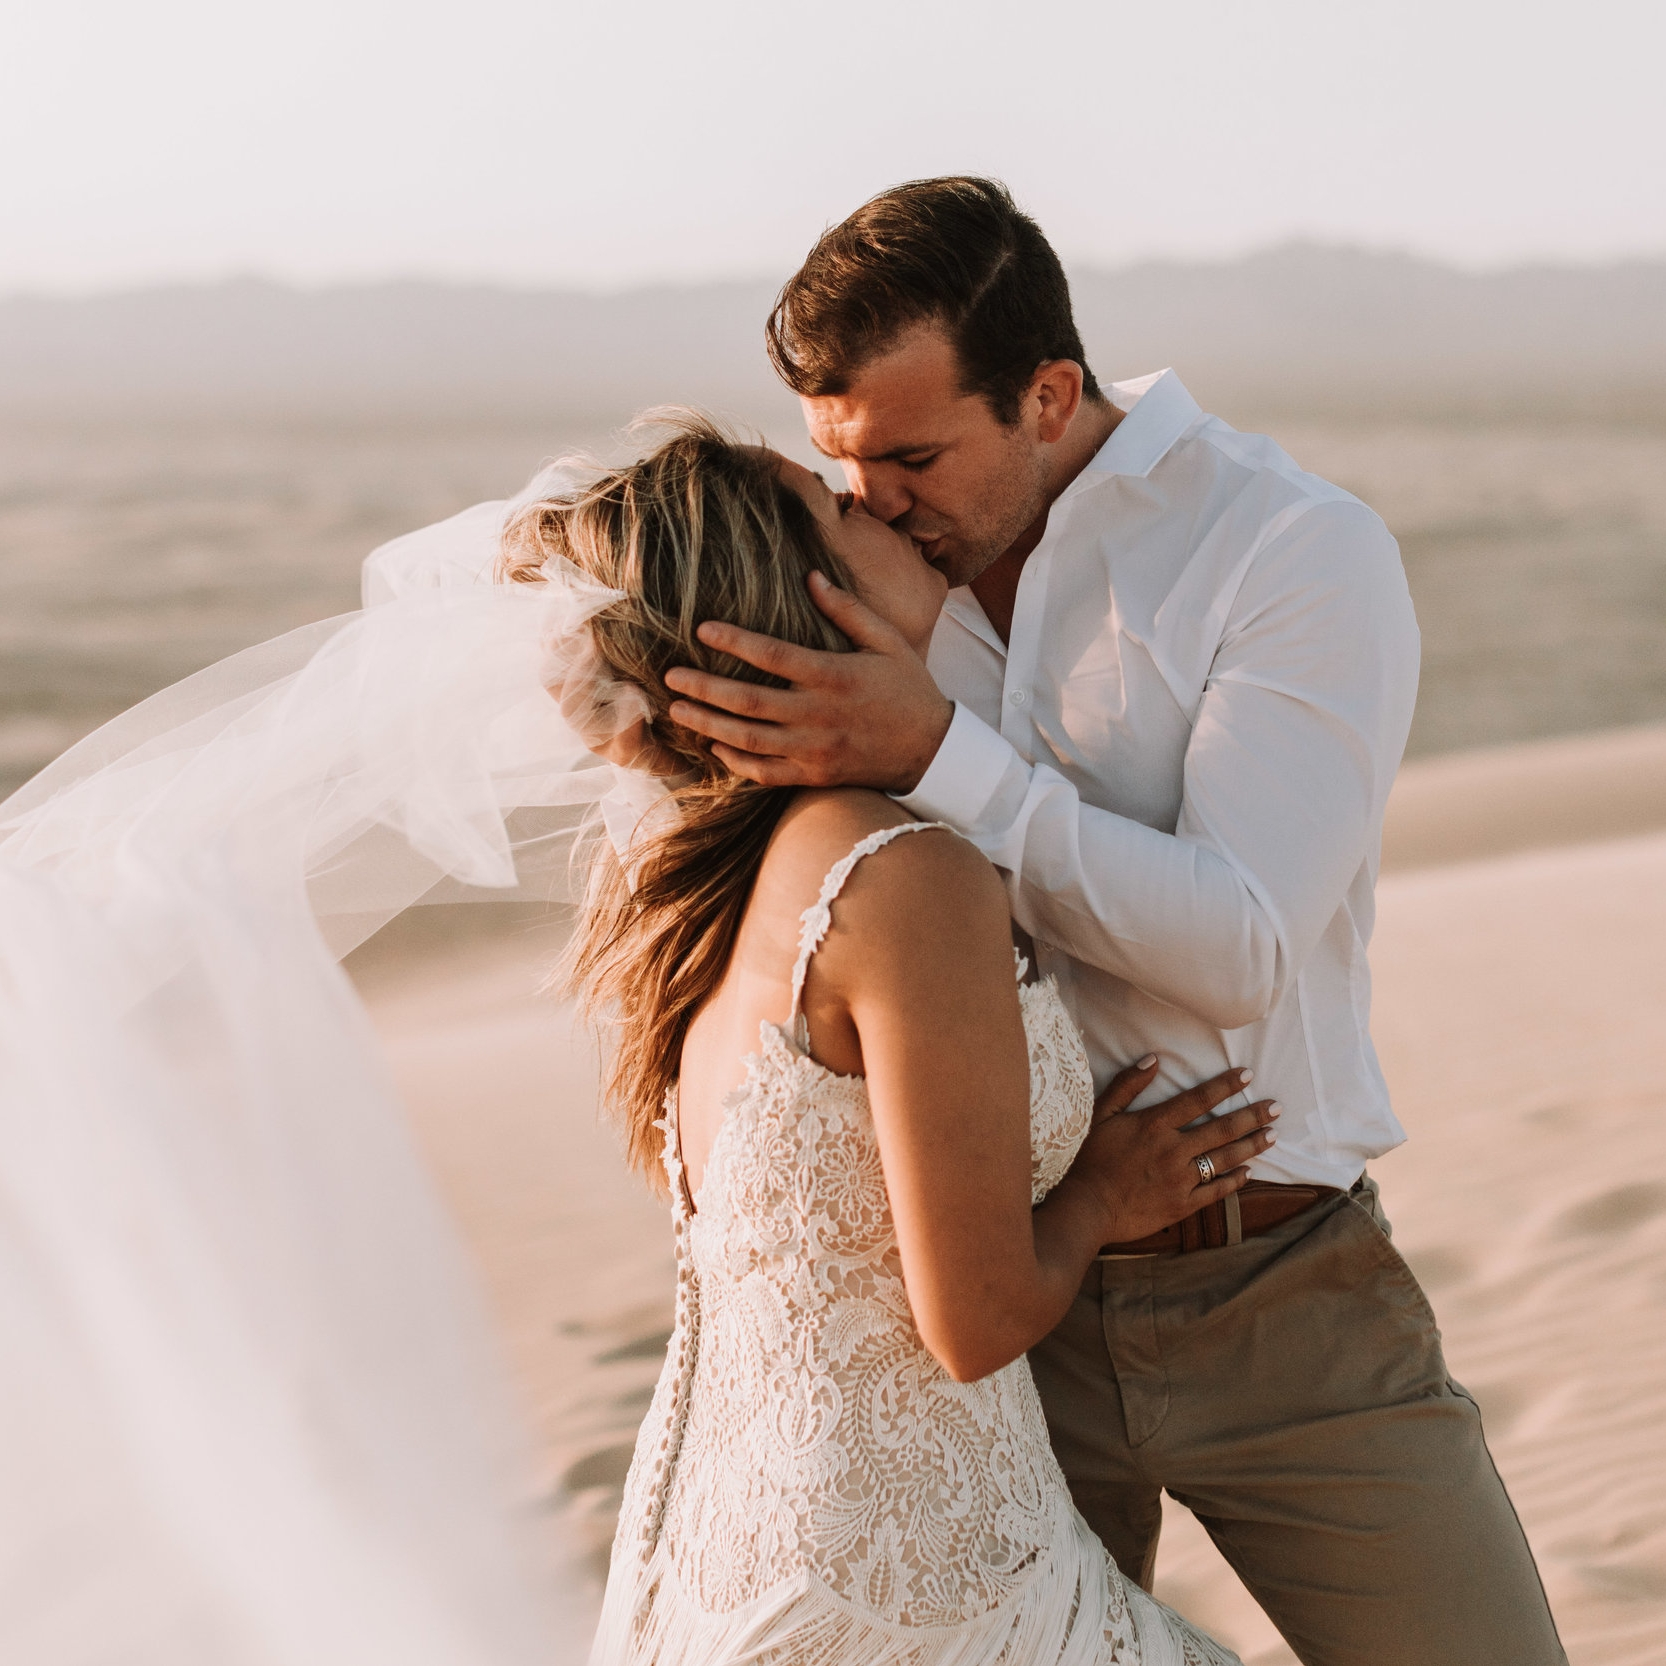 Tiffany + Scott | Styled Elopement | Imperial Sands, CA